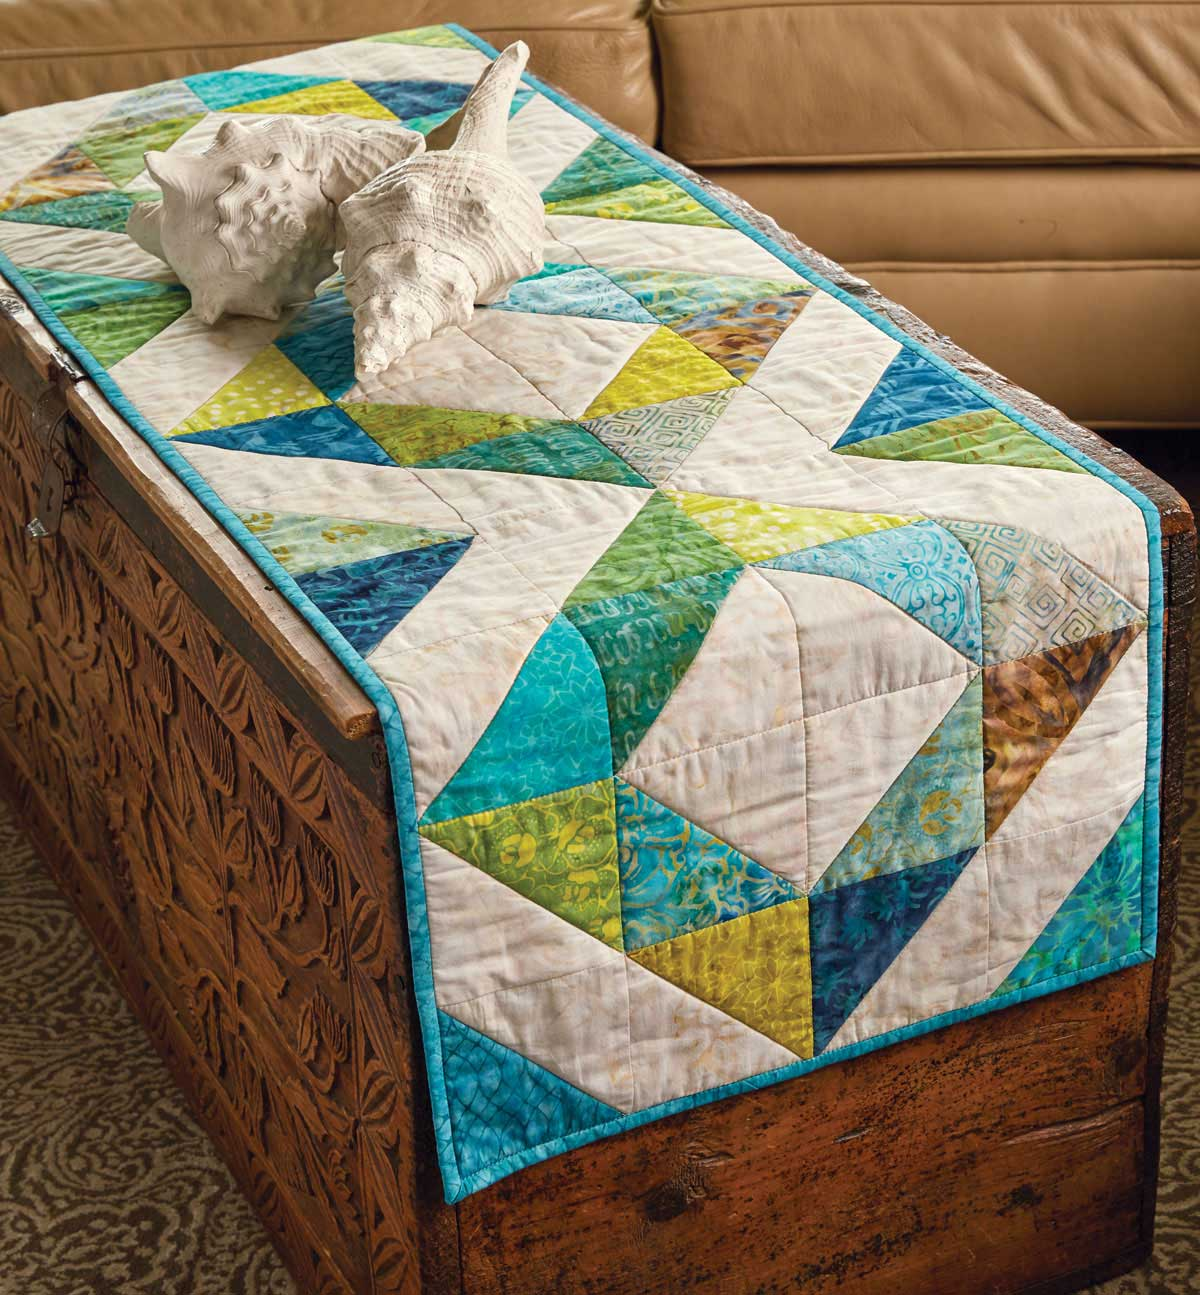 Island Chain Quilt - Fons & Porter - The Quilting Company : fons and porter quilt kits - Adamdwight.com